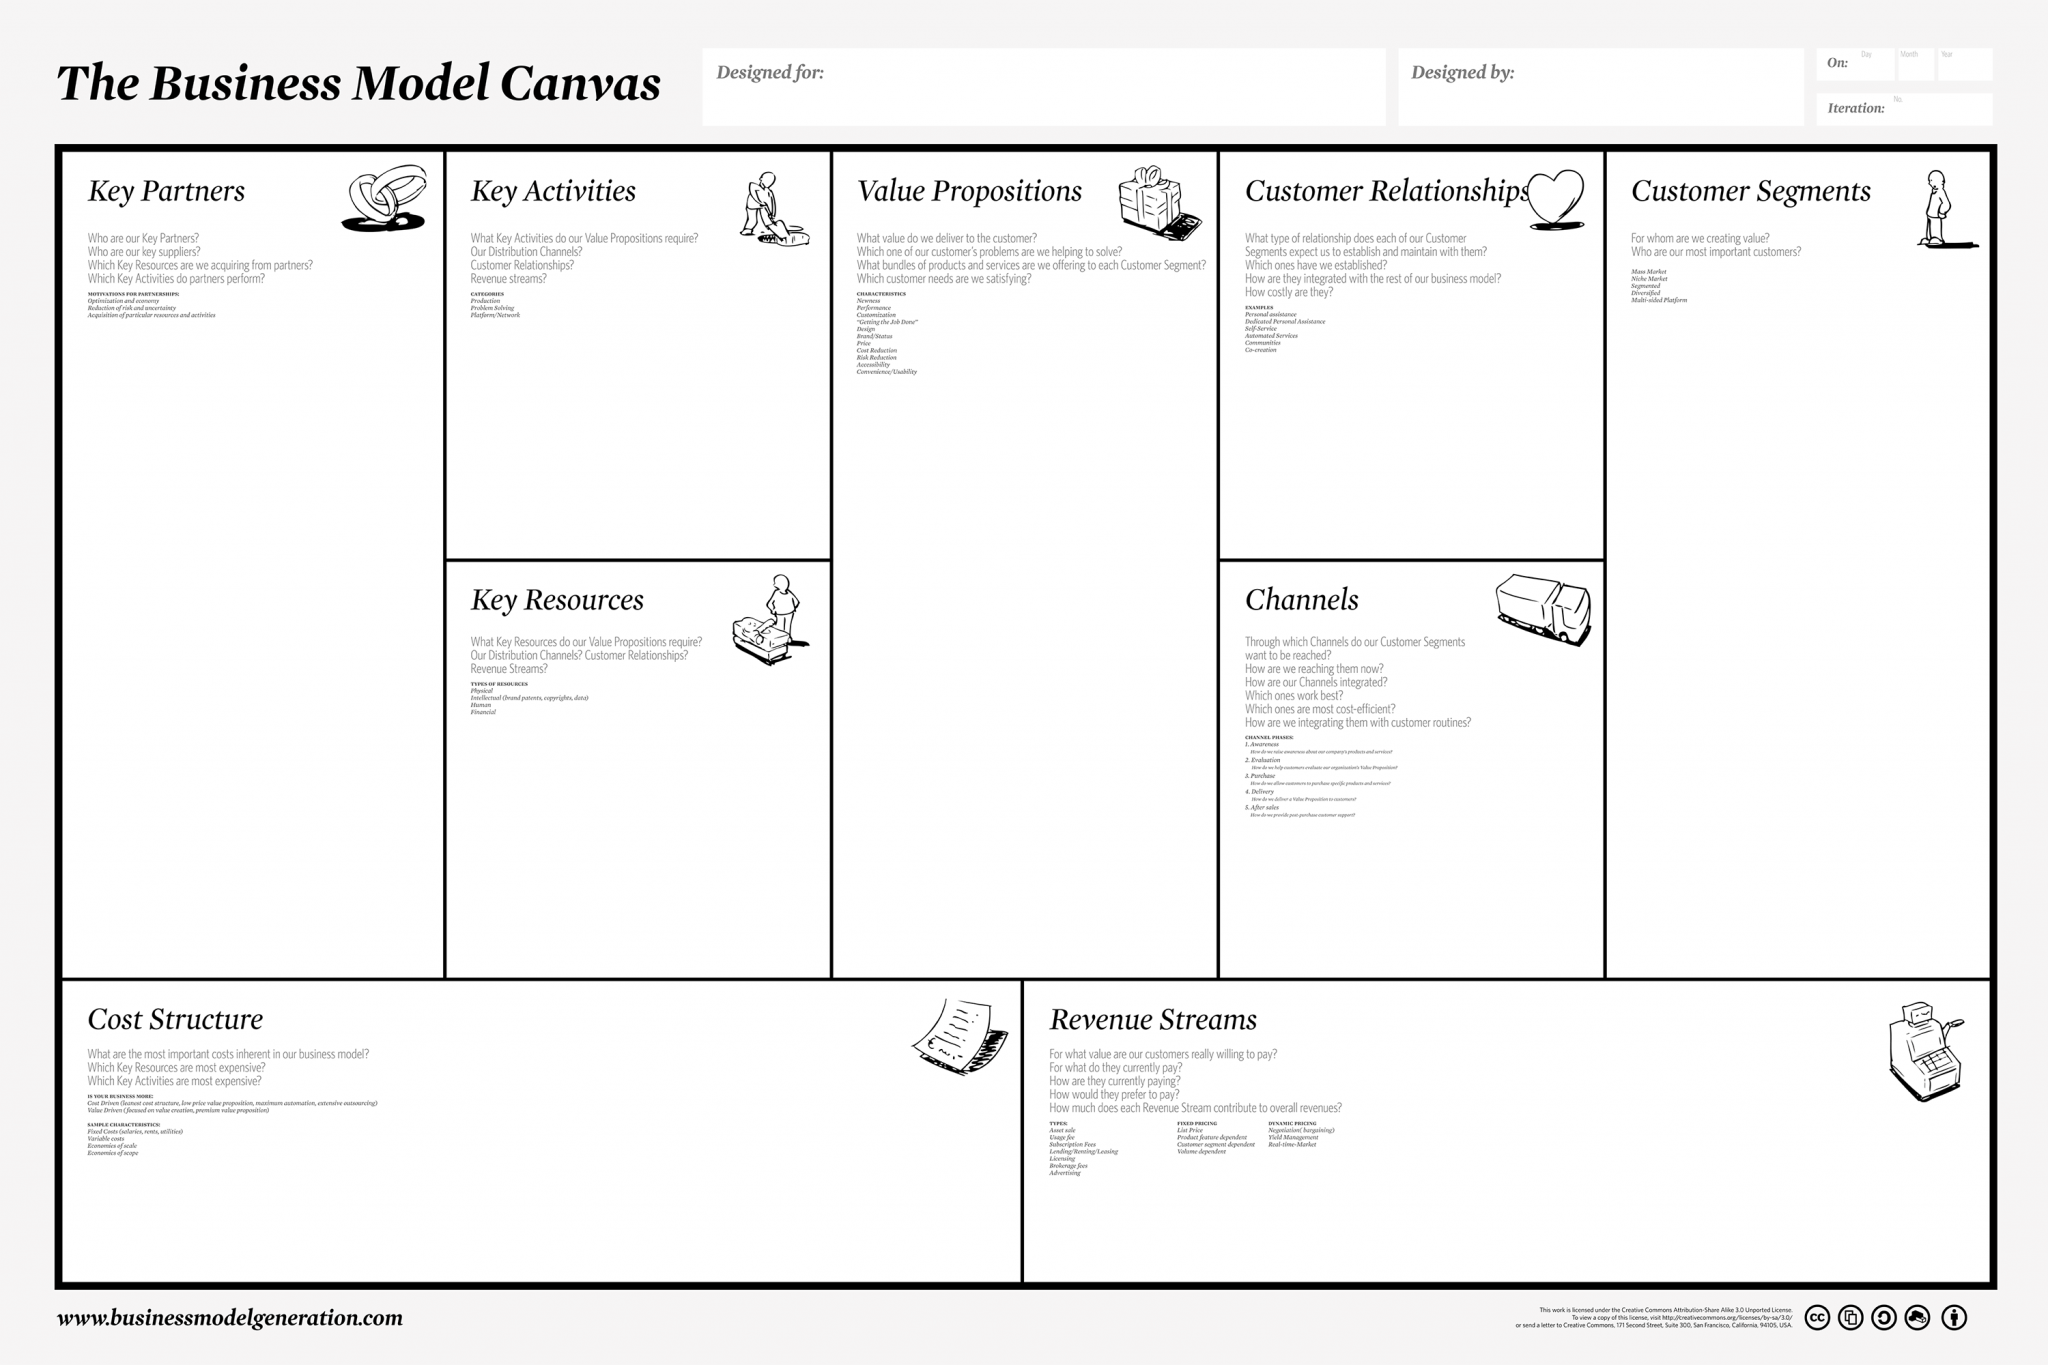 Should I Use The Business Model Canvas Or The Lean Canvas